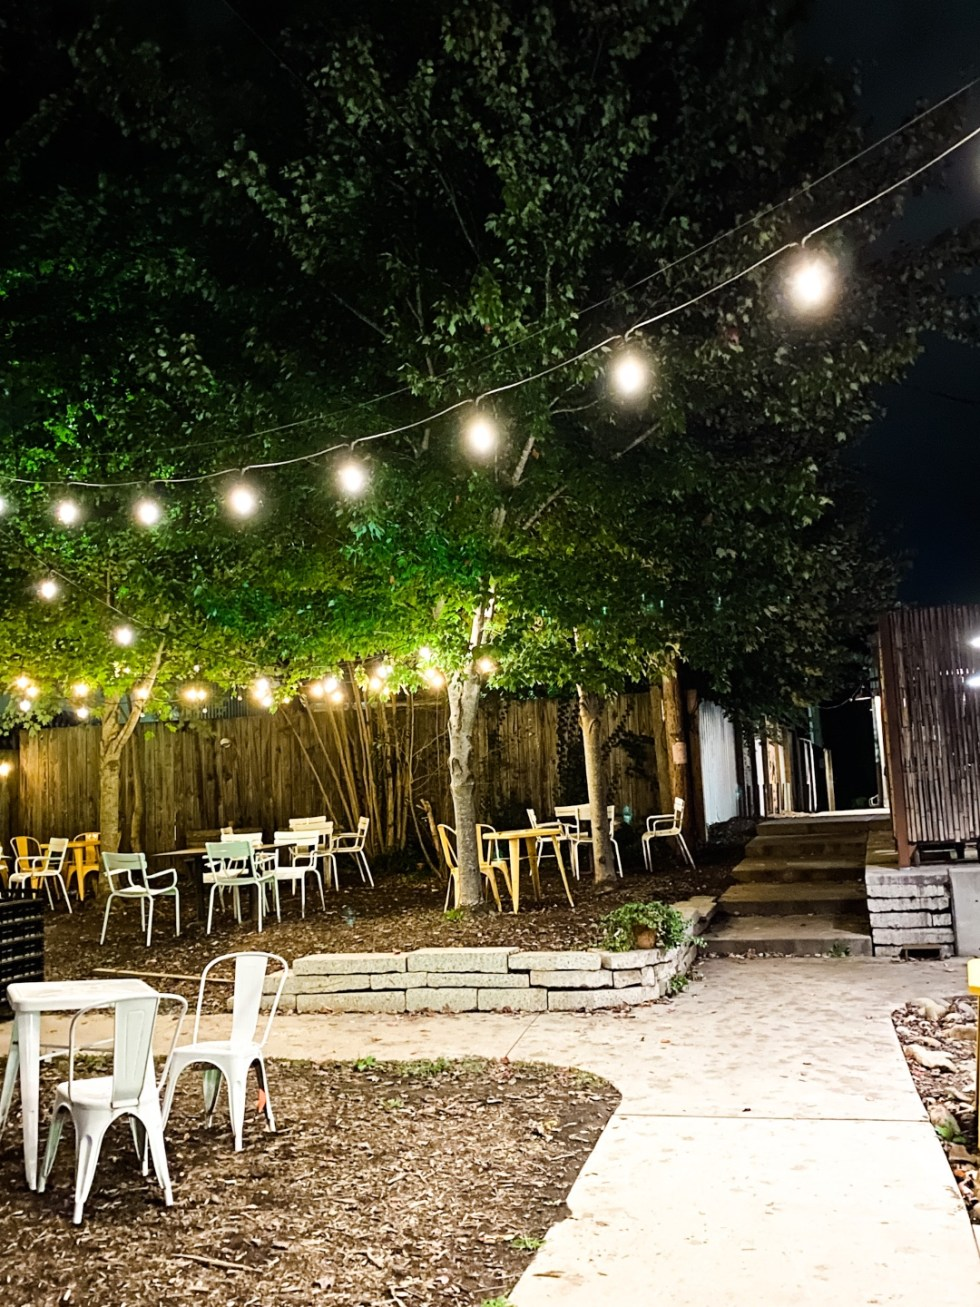 A Casual Weekend in Asheville: the Best Things to Do with your Dogs - I'm Fixin' To - @mbg0112   Weekend In Asheville by popular NC travel blog, I'm Fixin' To: image of a patio with tables, chairs, and bistro lights.